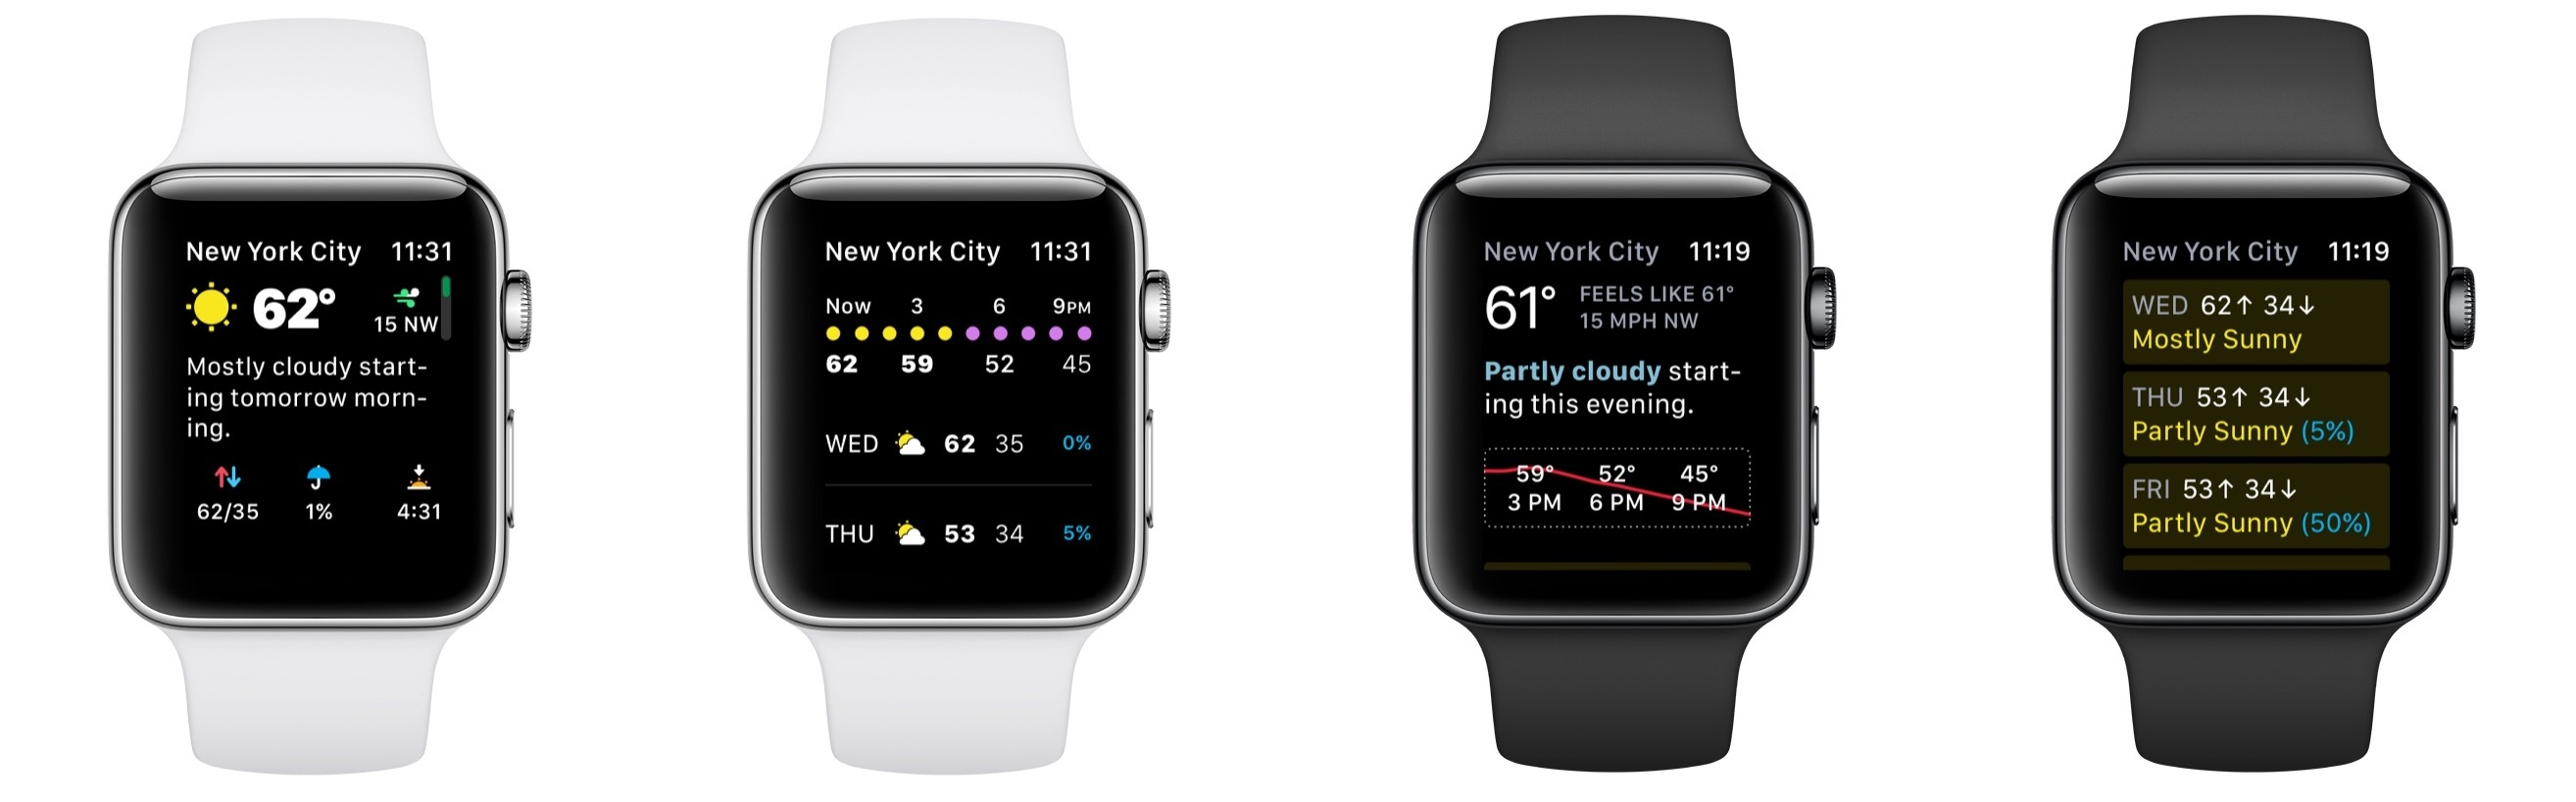 Left images: CARROT's redesigned Watch app; Right images: CARROT's previous Watch app.